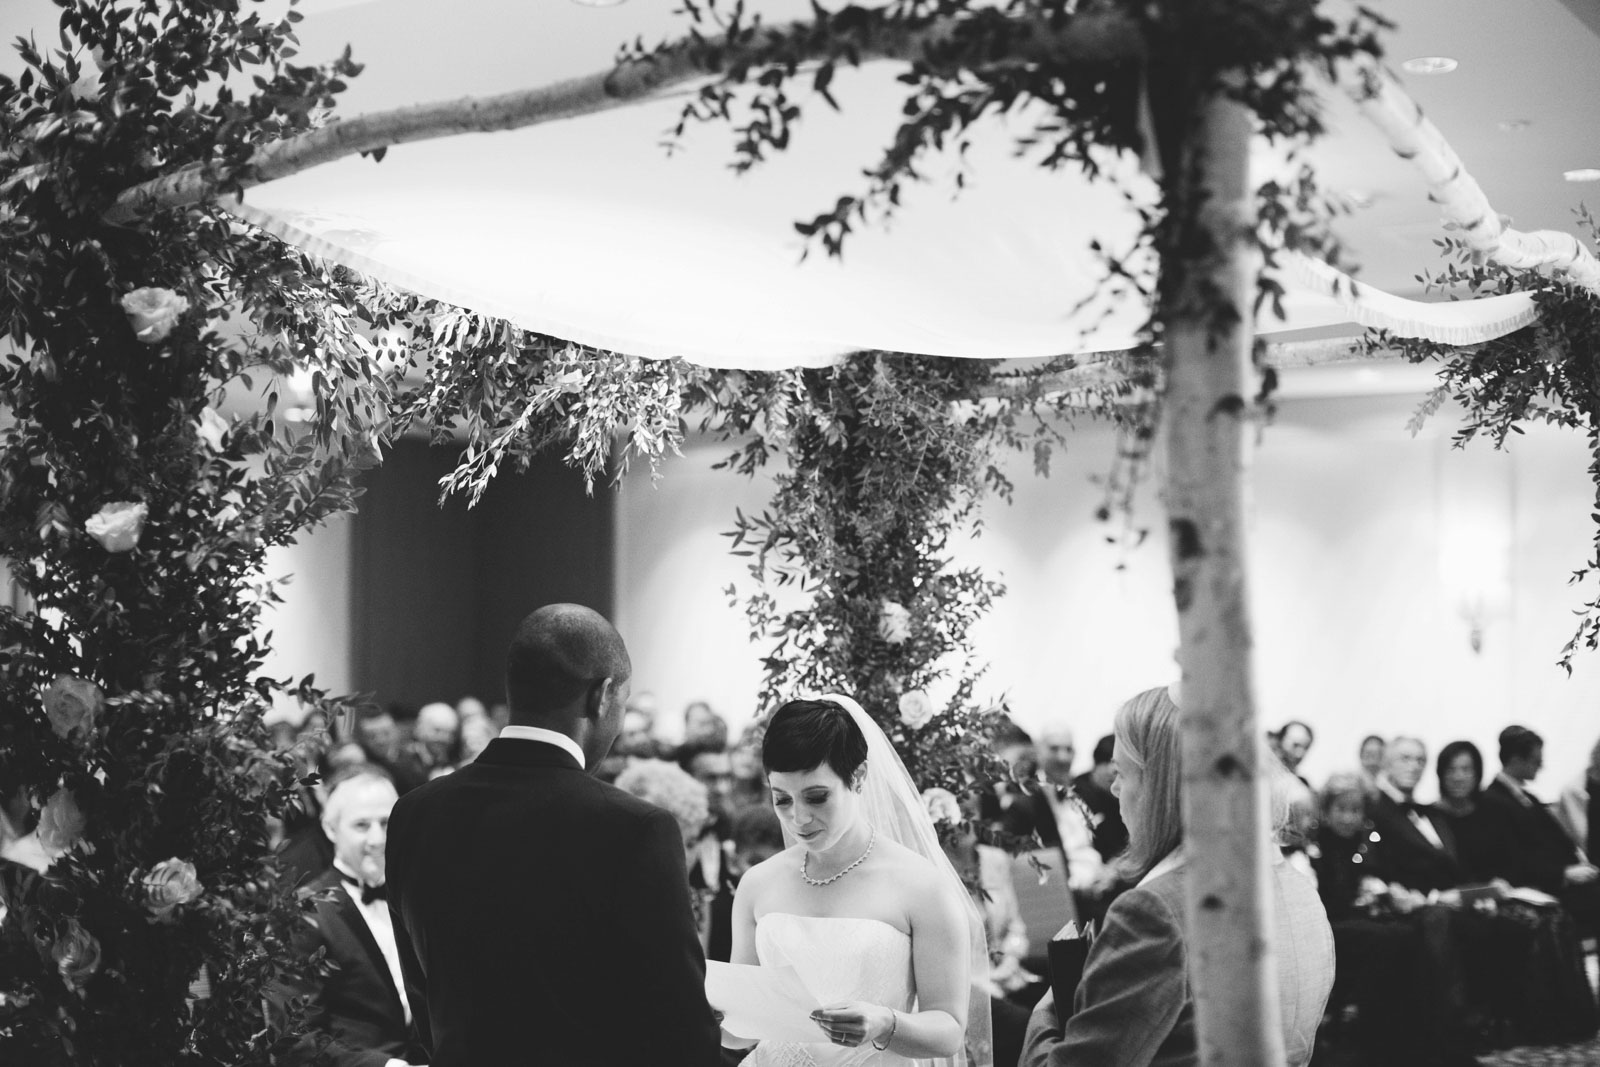 bride reading her vows under chuppah made of birch branches and greenery